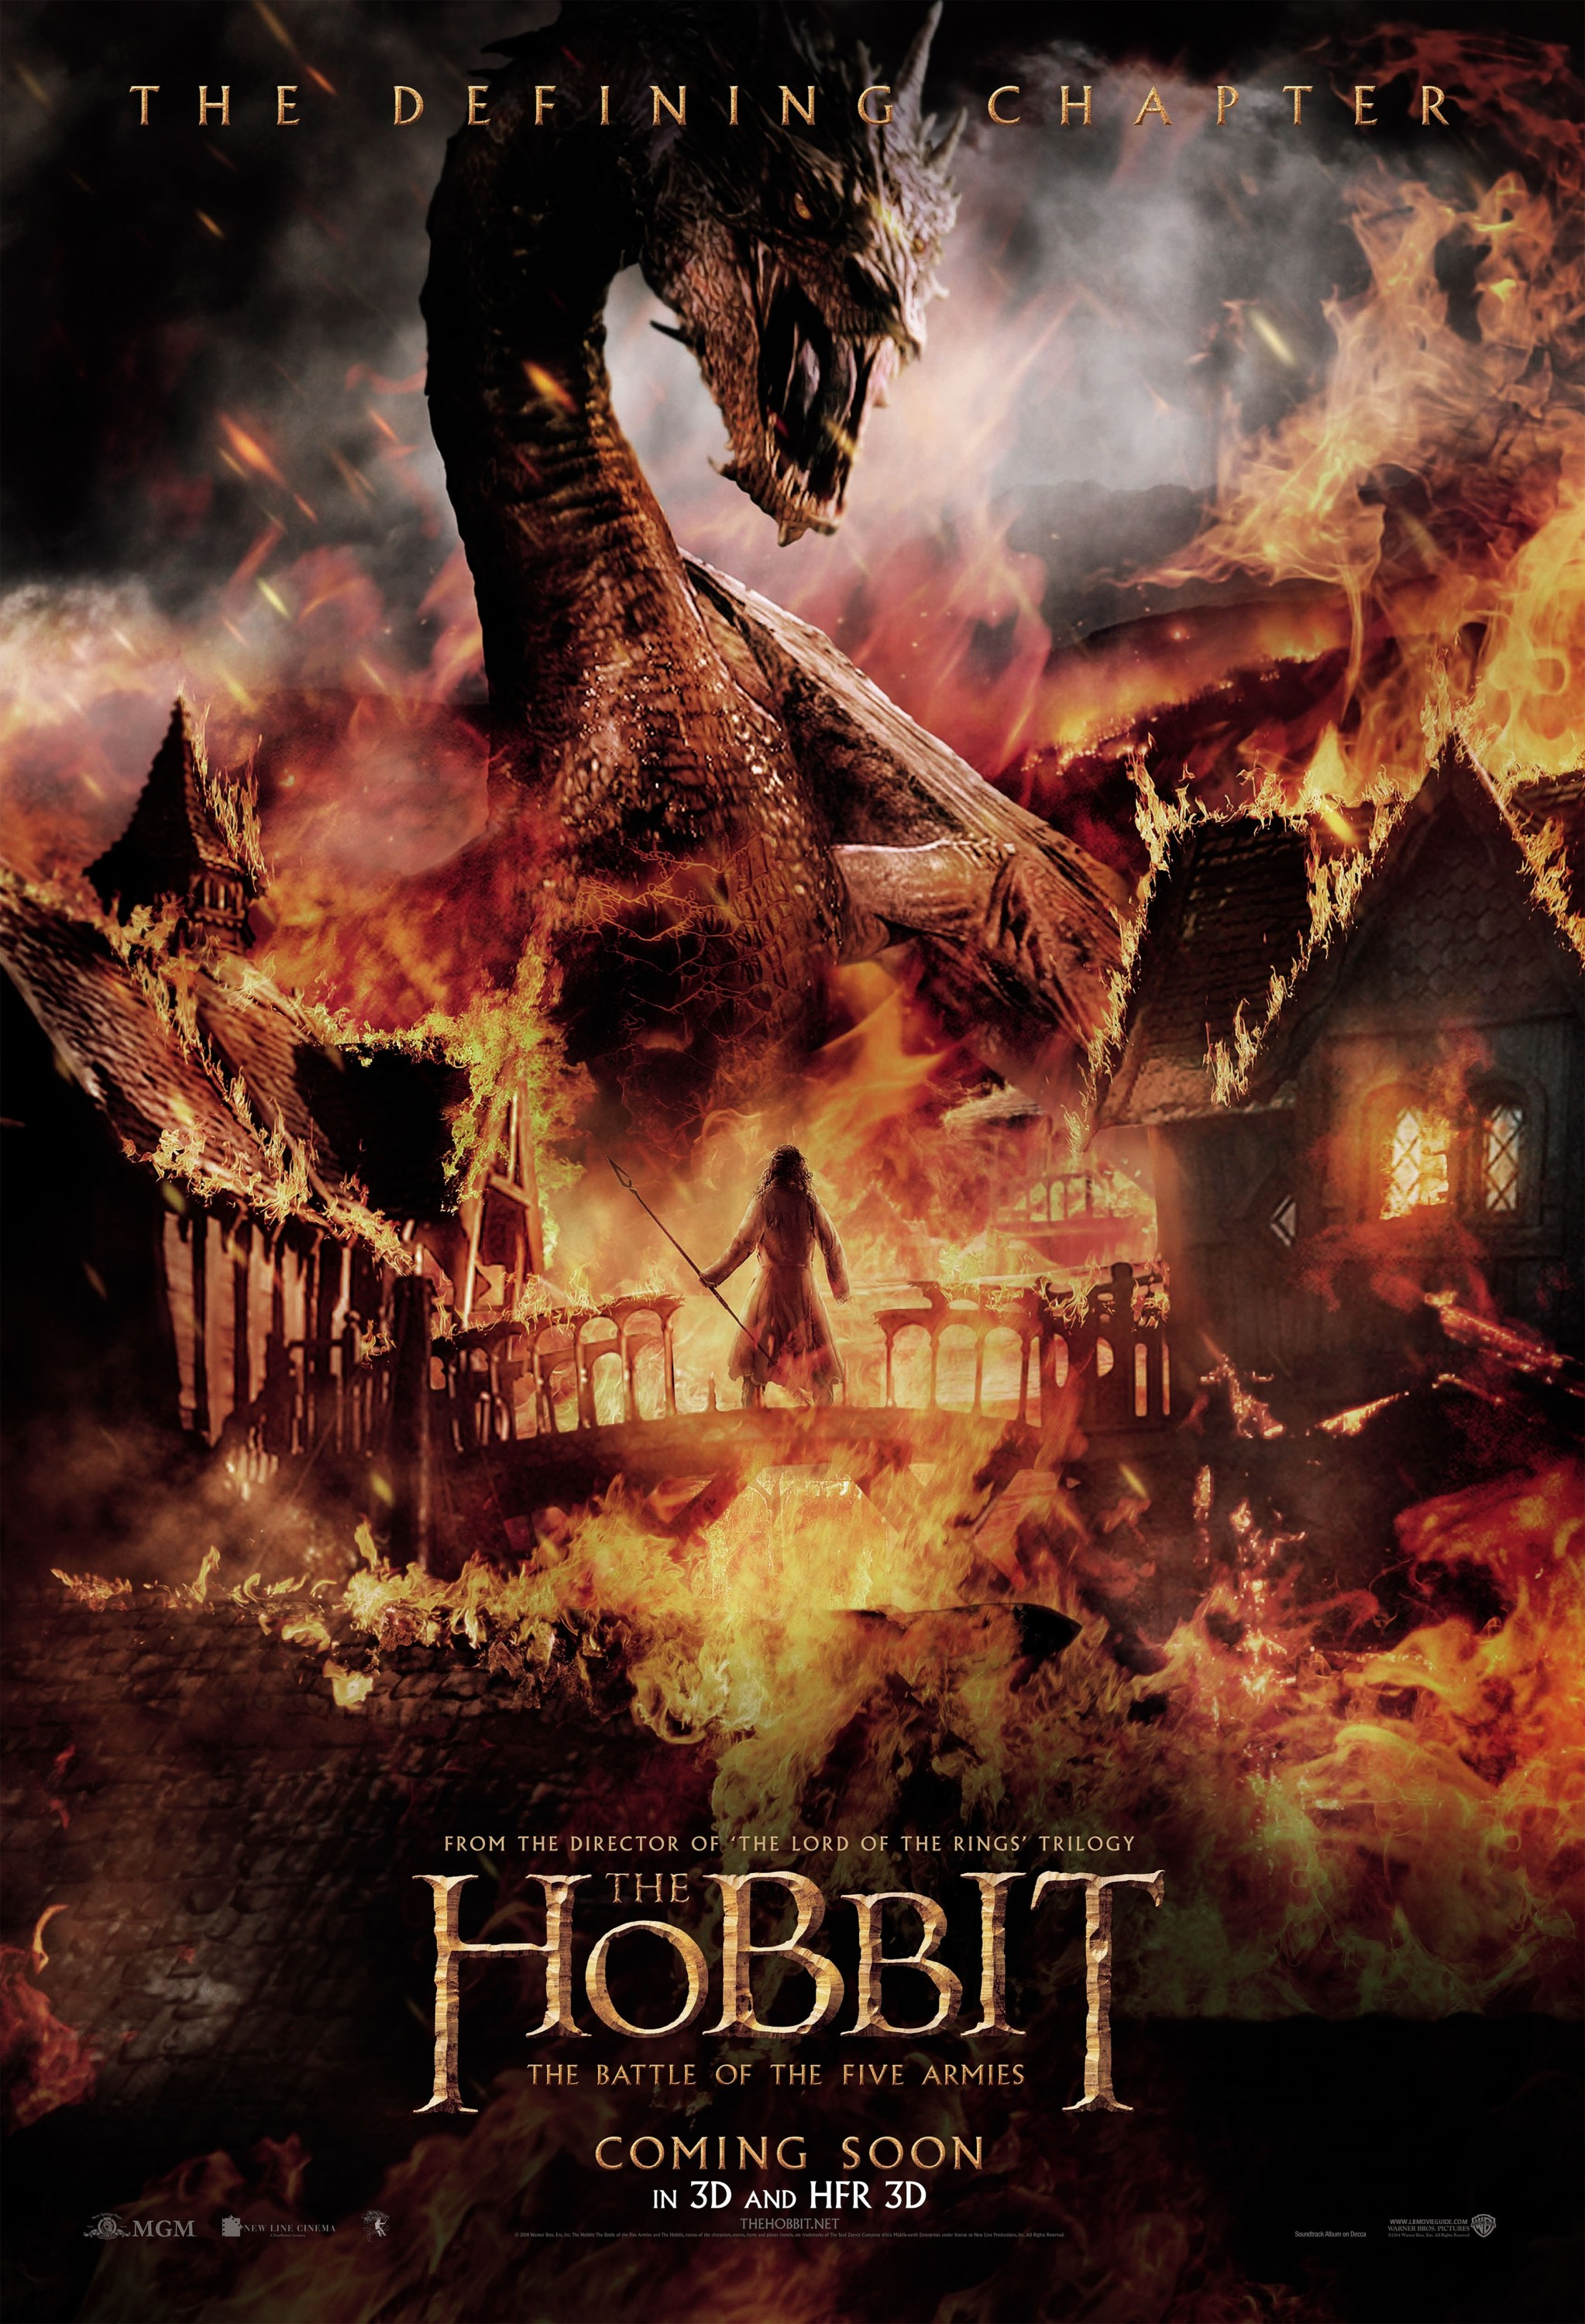 The Hobbit The Battle of the Five Armies-Official Poster XXLG-14NOVEMBRO2014-00